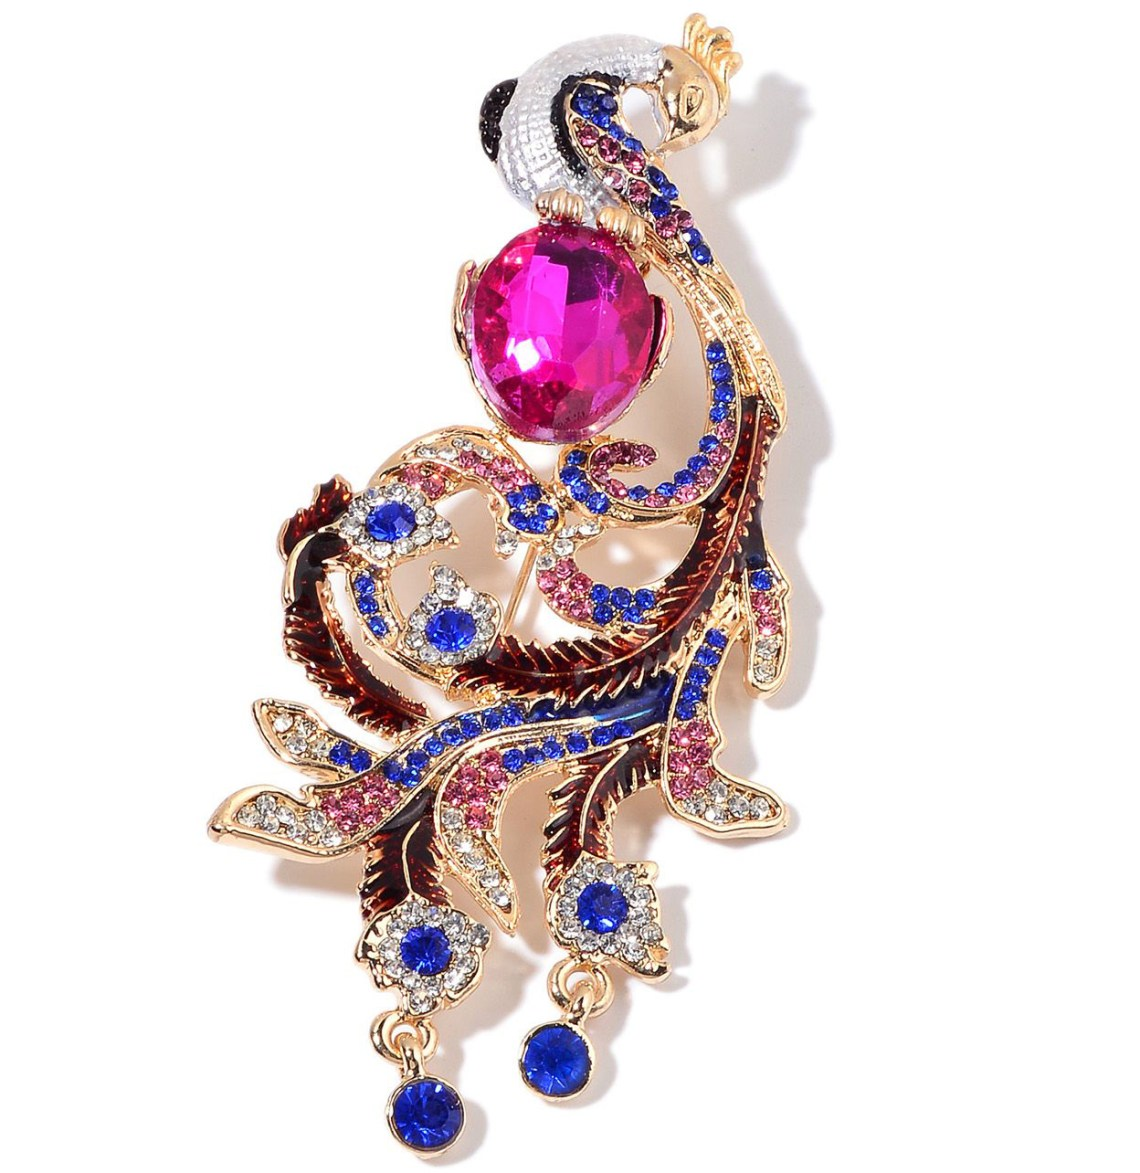 Fashion Week Roundup Jewelry - Austrian Crystal Peacock Brooch